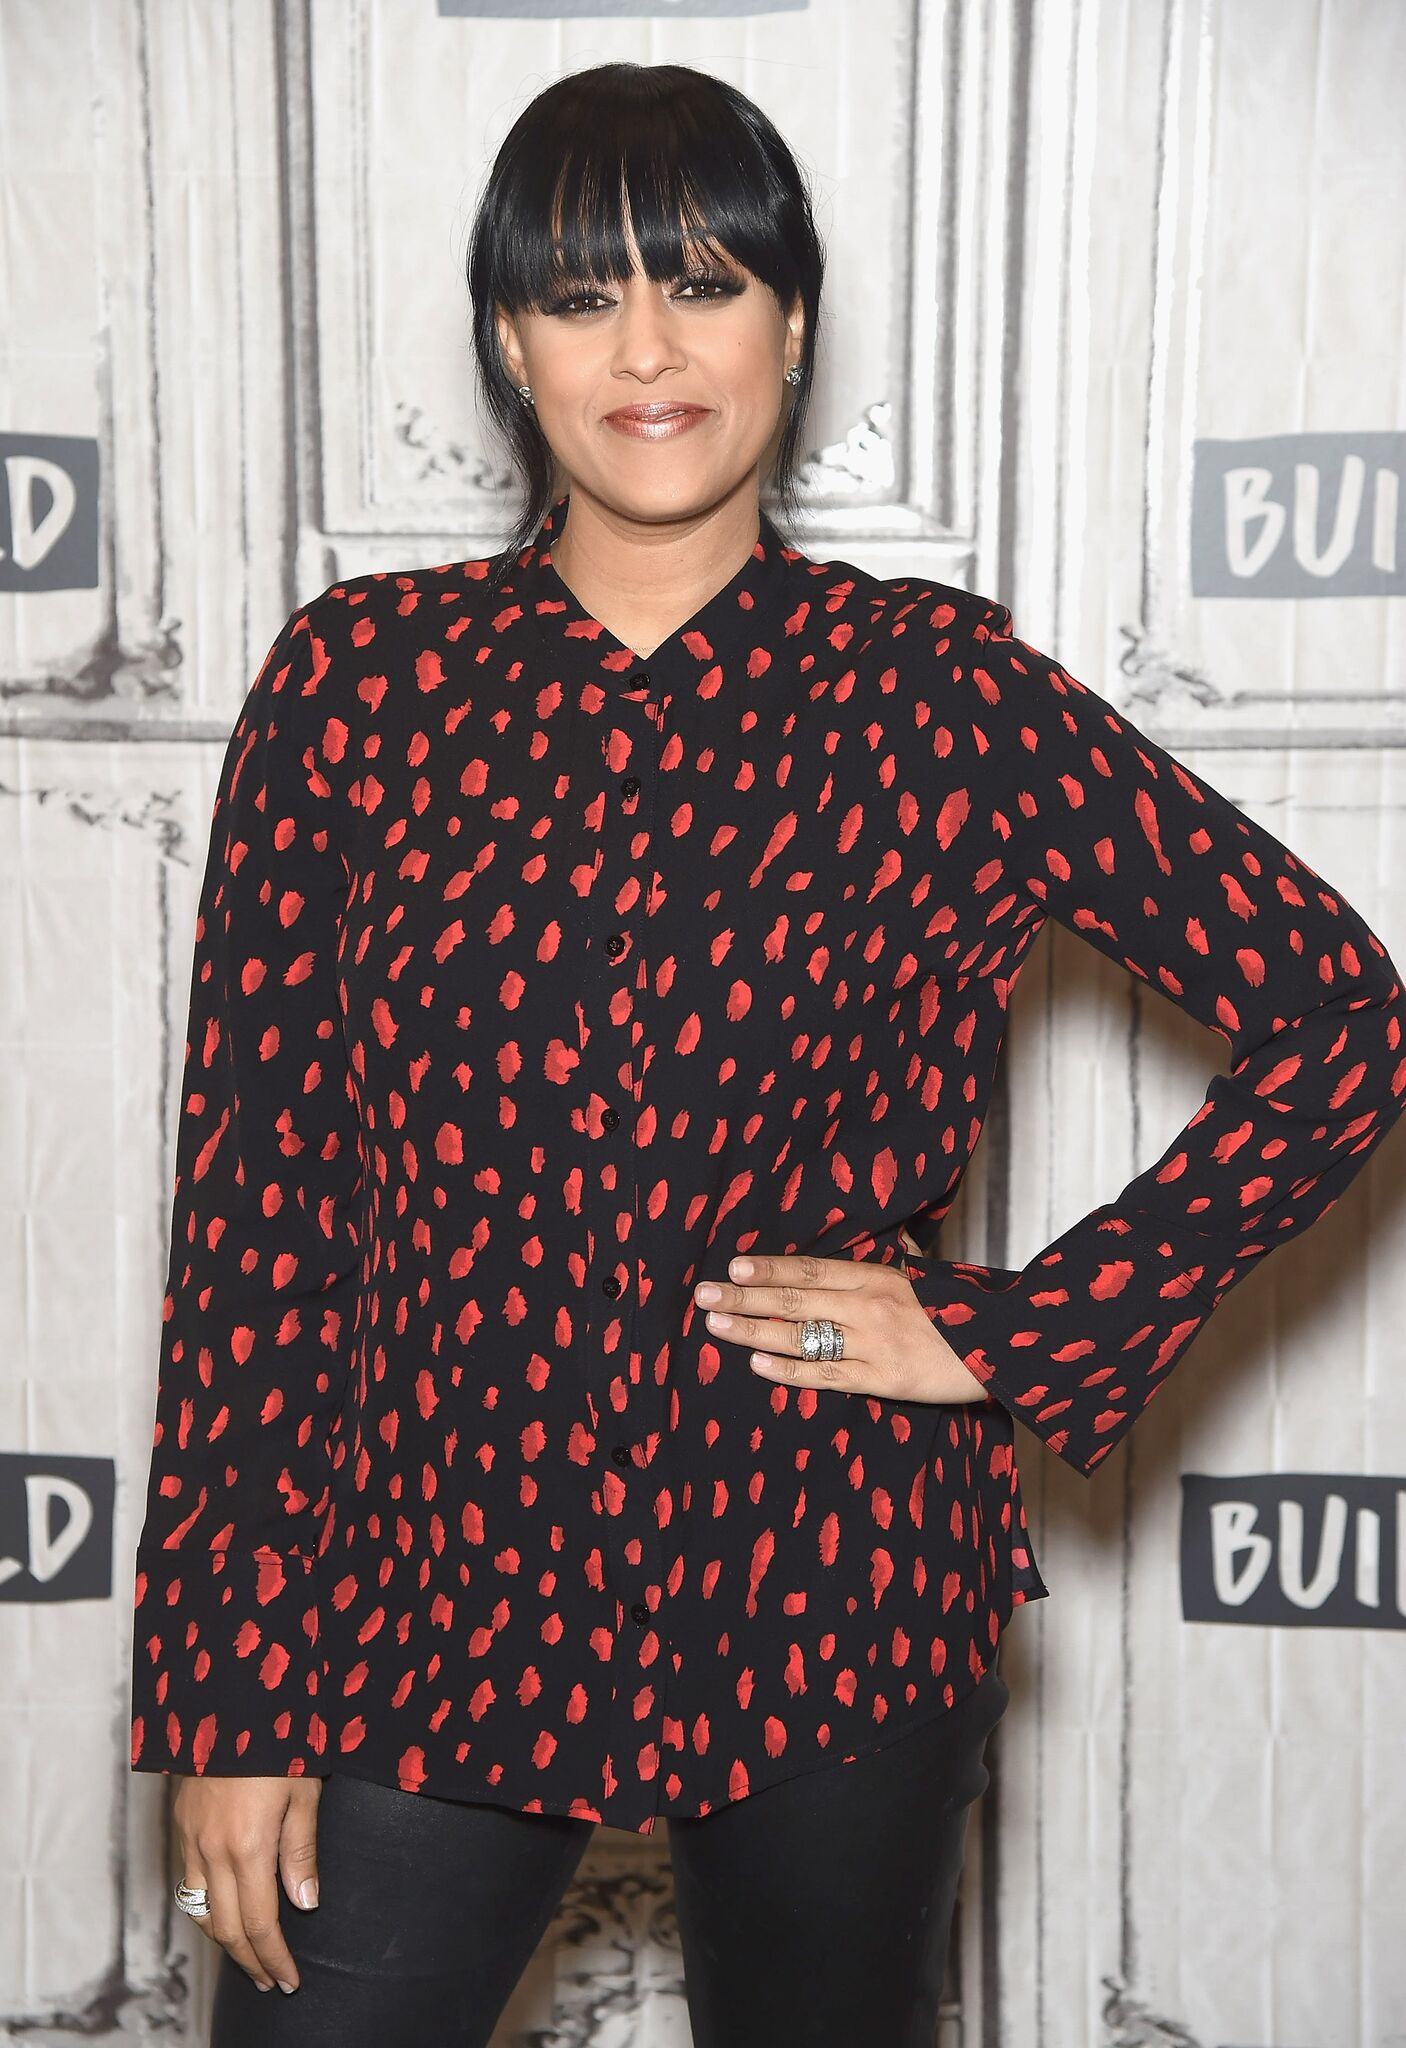 """Tia Mowry attends Build Series to discuss her new book """"Whole New You"""" at Build Studio on 